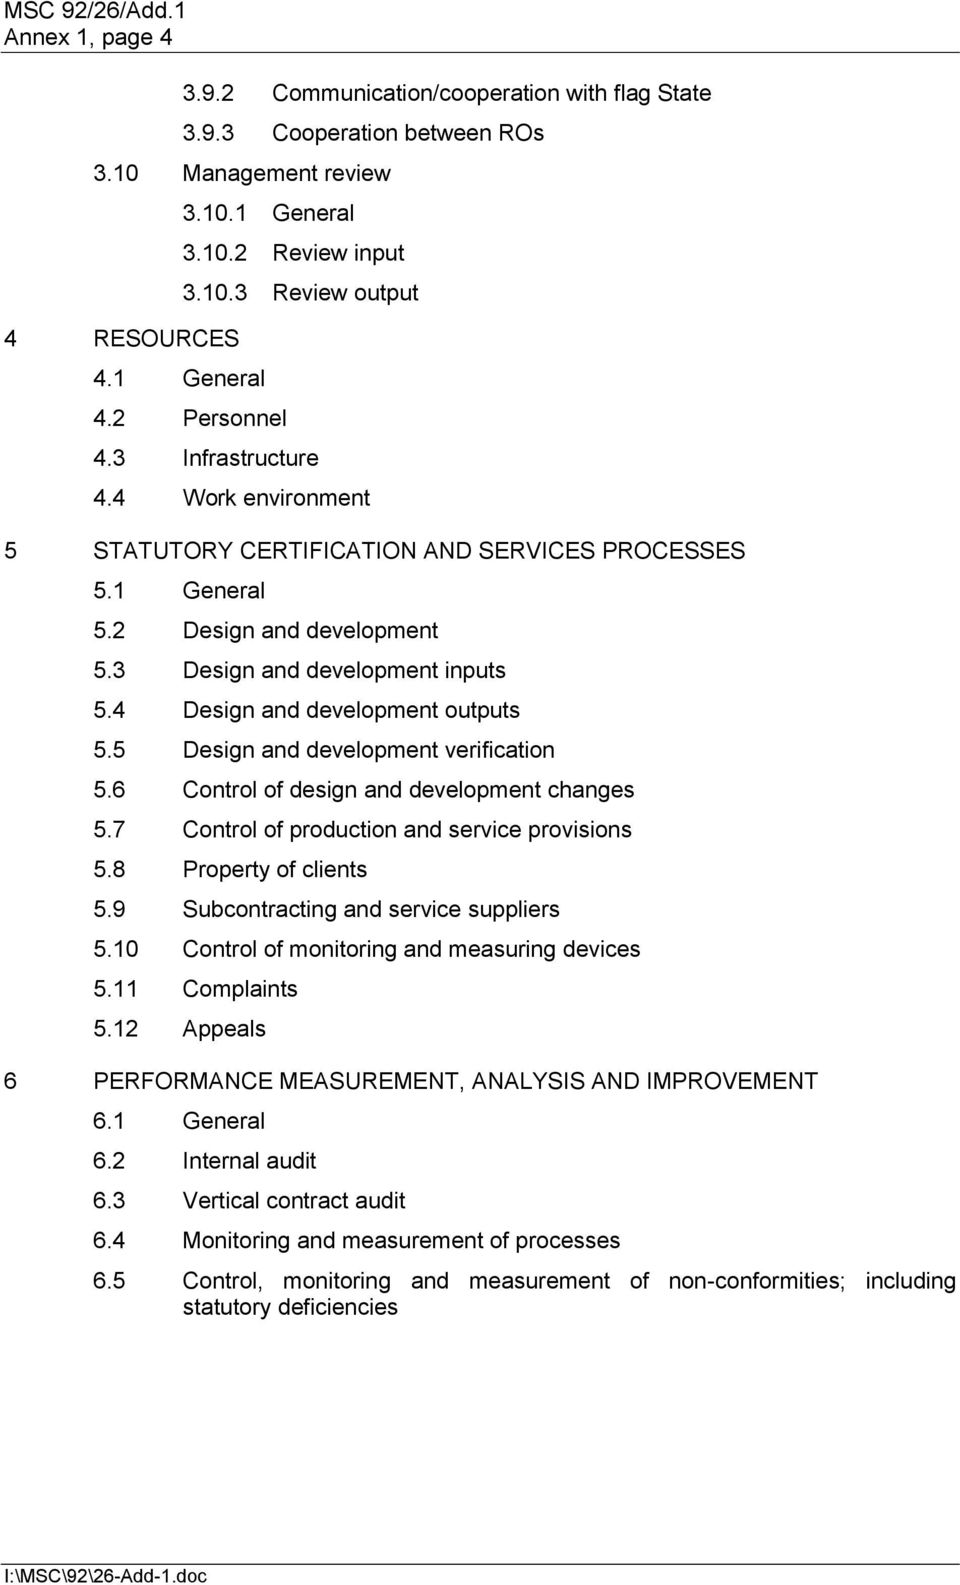 4 Design and development outputs 5.5 Design and development verification 5.6 Control of design and development changes 5.7 Control of production and service provisions 5.8 Property of clients 5.